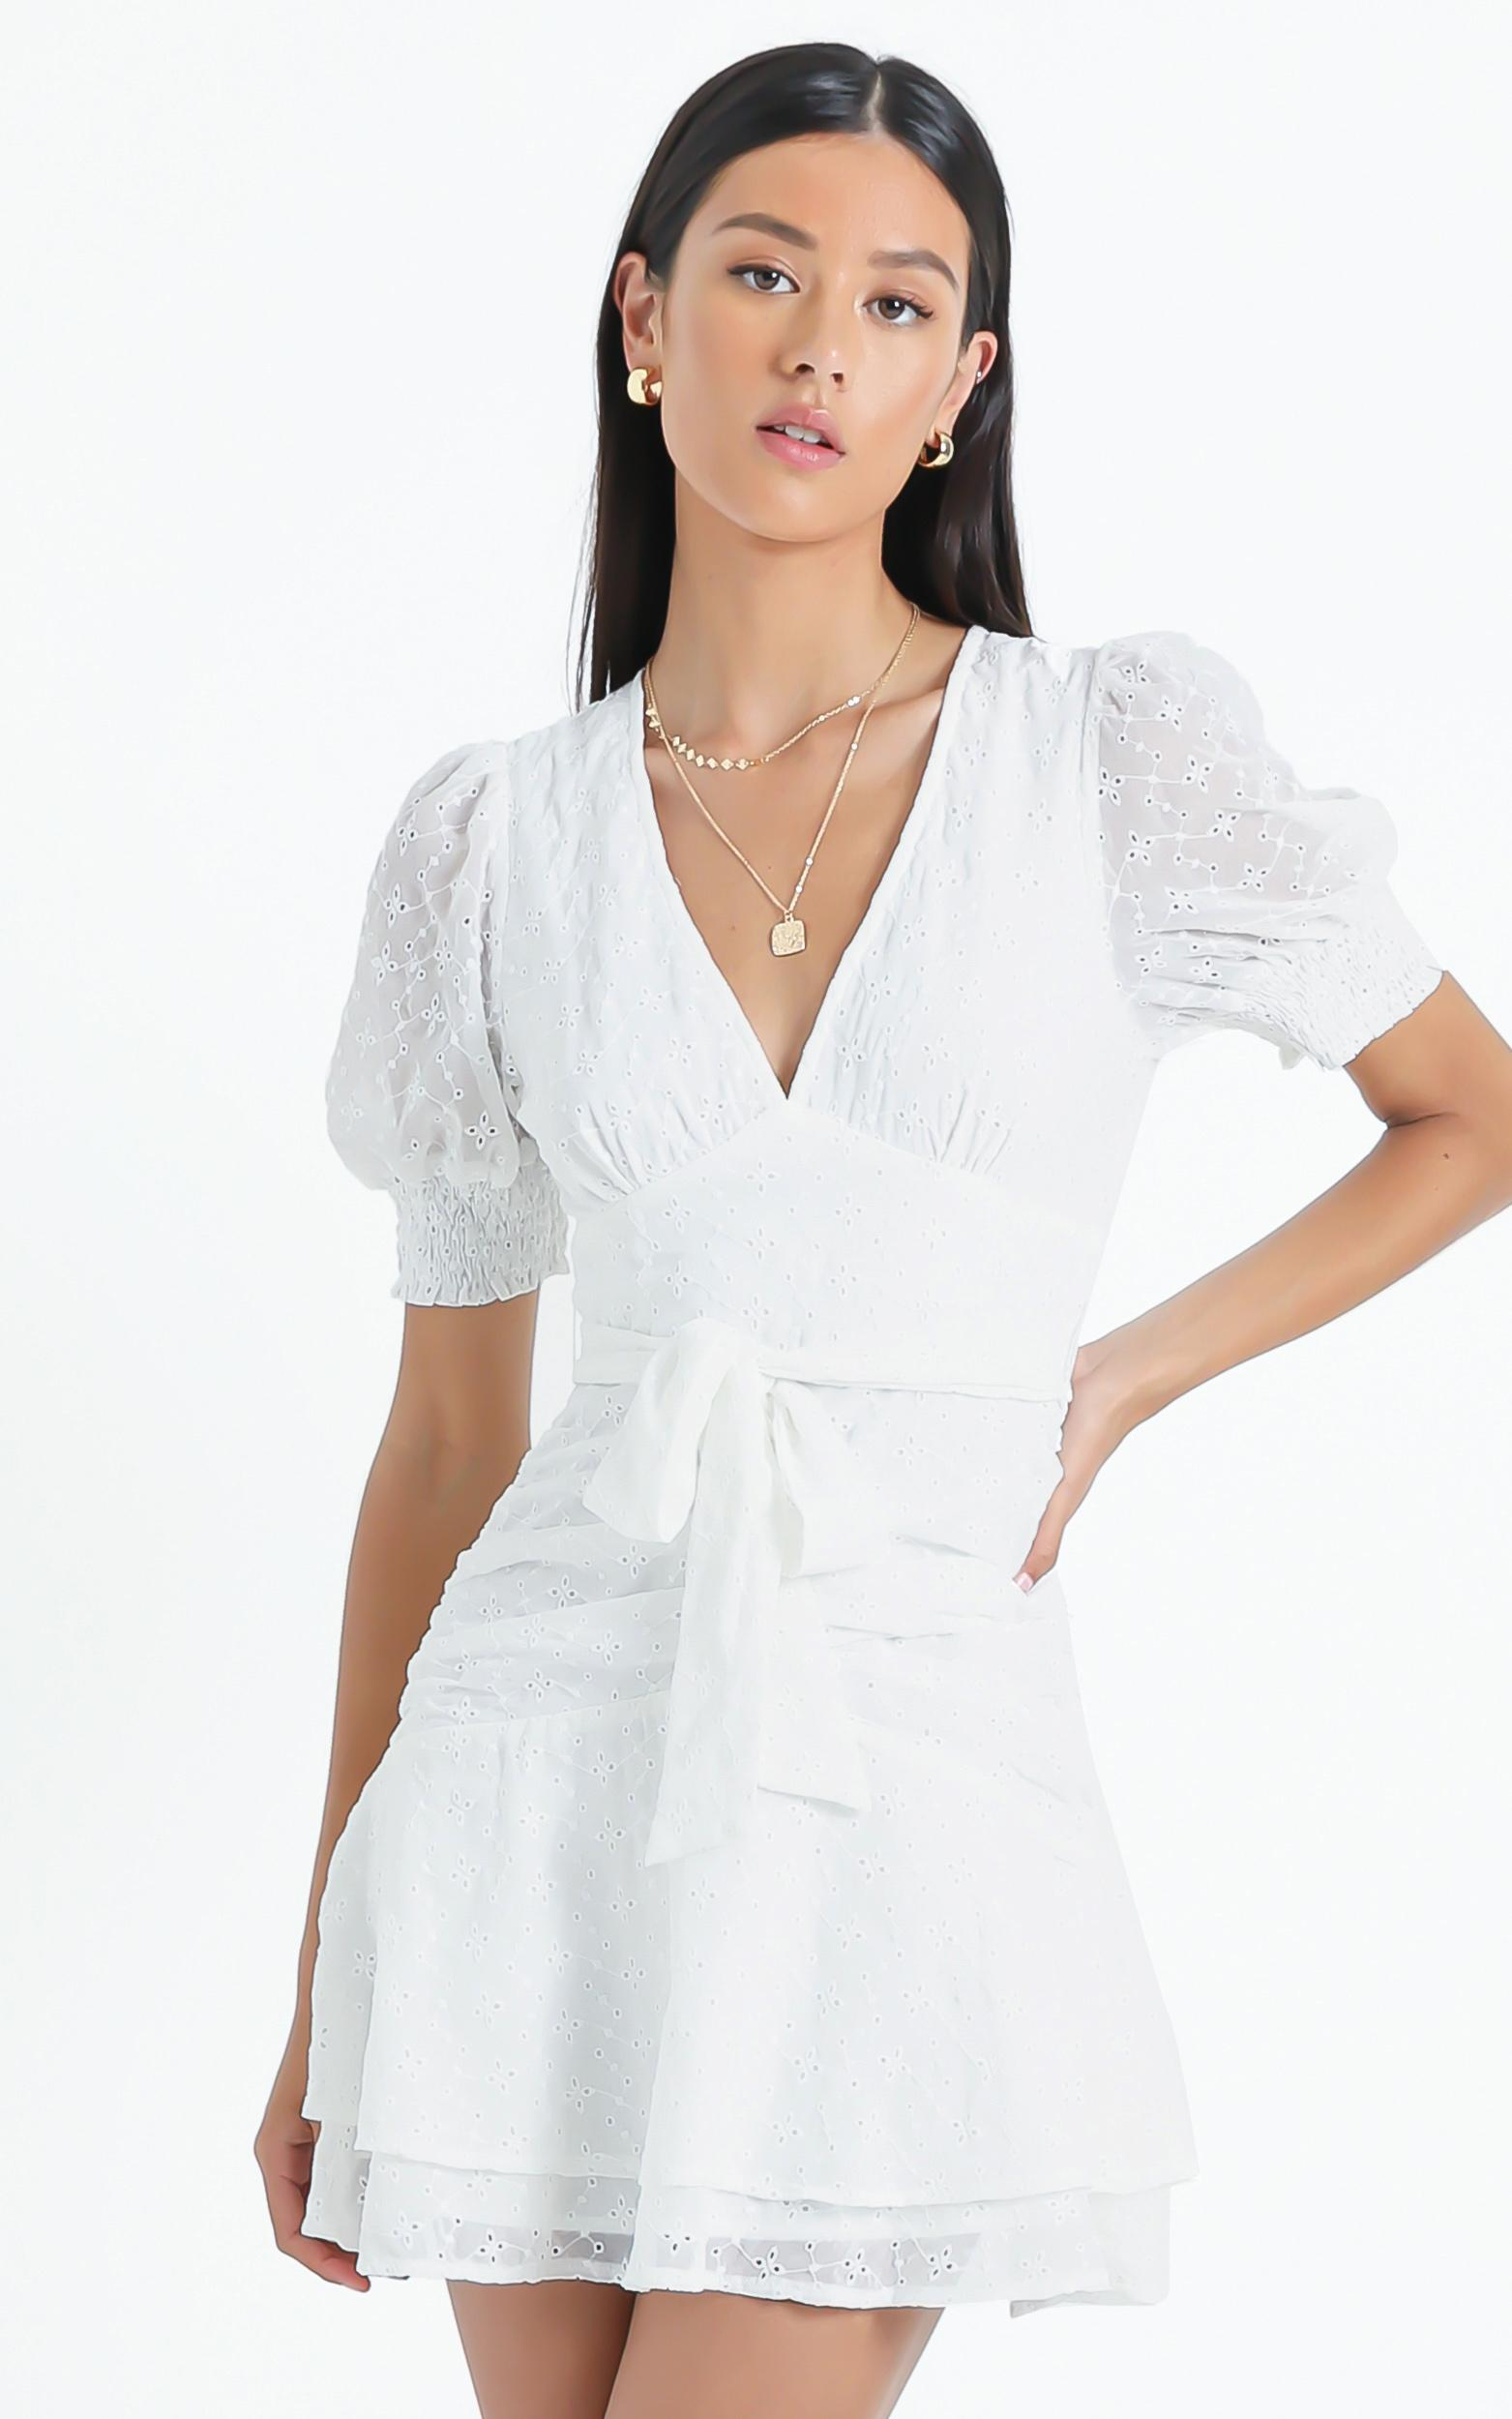 Lambeth Dress in White Embroidery - 06, WHT1, hi-res image number null